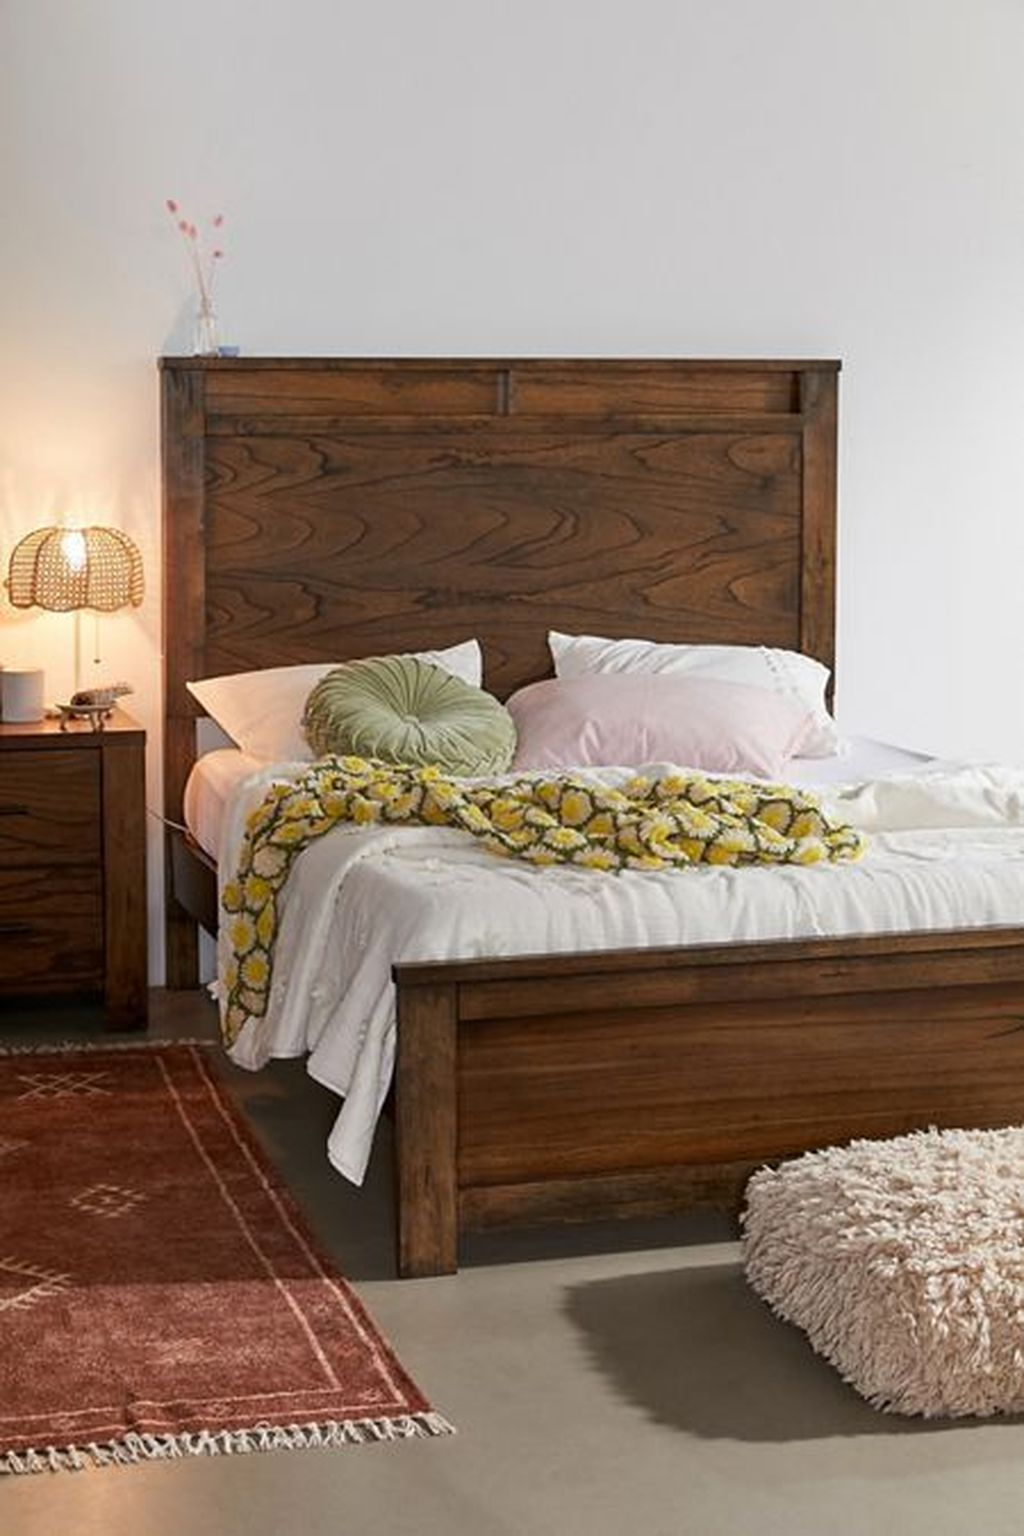 Amazing Vintage Wooden Bed Frame Design Ideas 31 Pimphomee